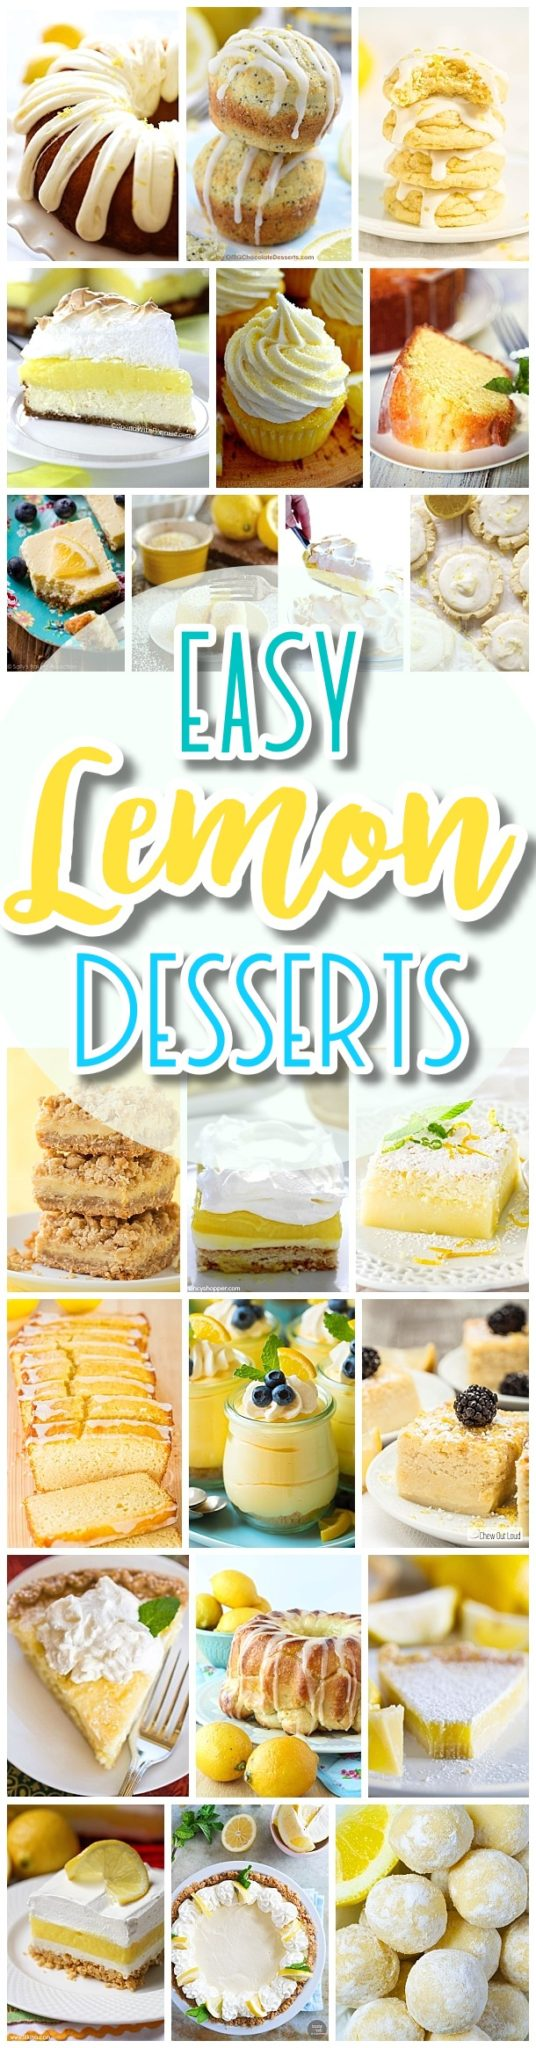 The BEST Easy Lemon Desserts and Treats Recipes - Perfect For Easter, Mother's Day Brunch, Bridal or Baby Showers and Pretty Spring and Summer Holiday Party Refreshments - Dreaming in DIY #simplelemonrecipes #simplelemondesserts #simplerecipes